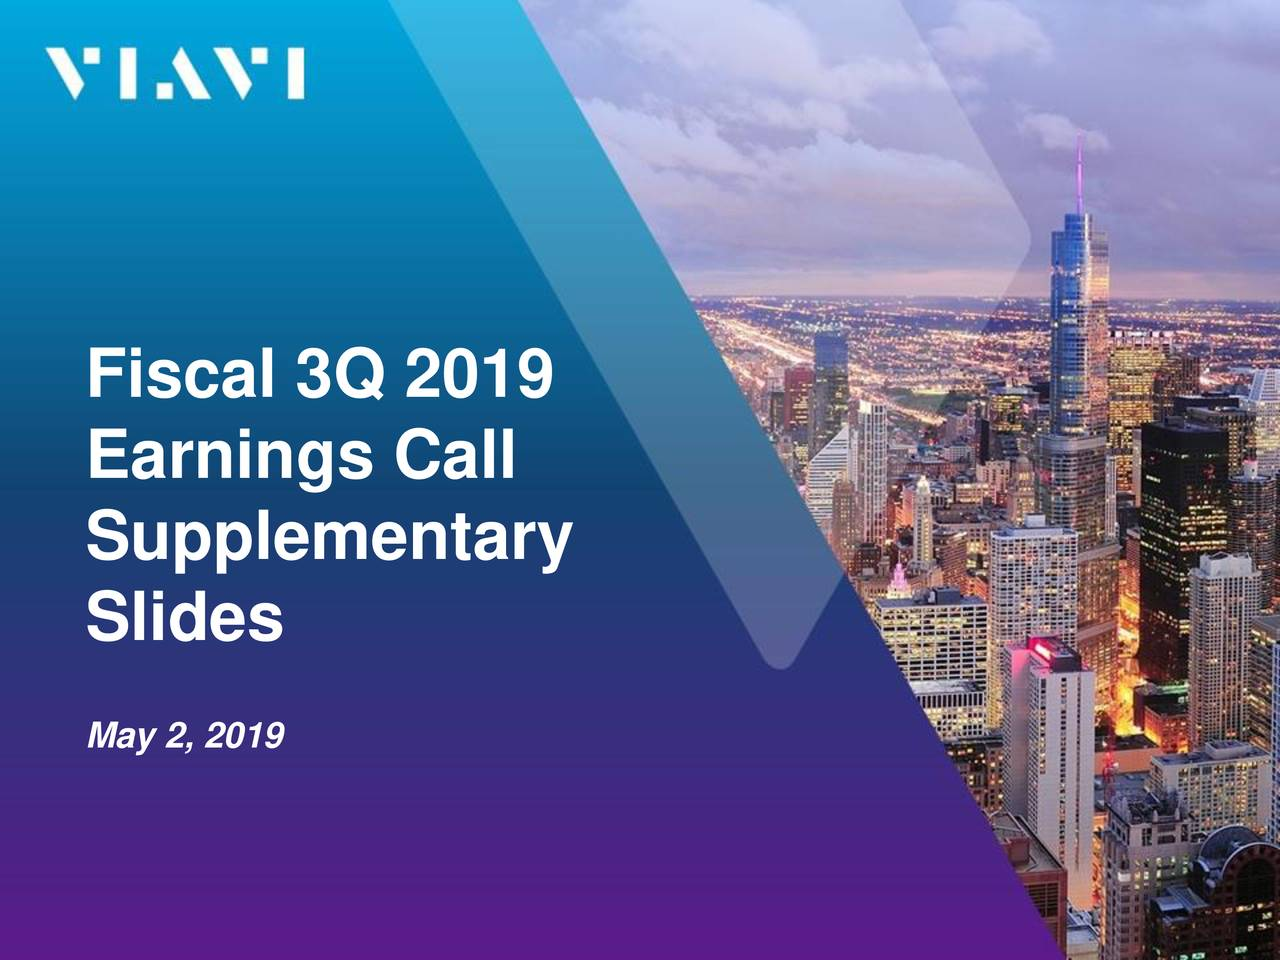 Earnings Call Slides: Viavi Solutions Inc. 2019 Q3